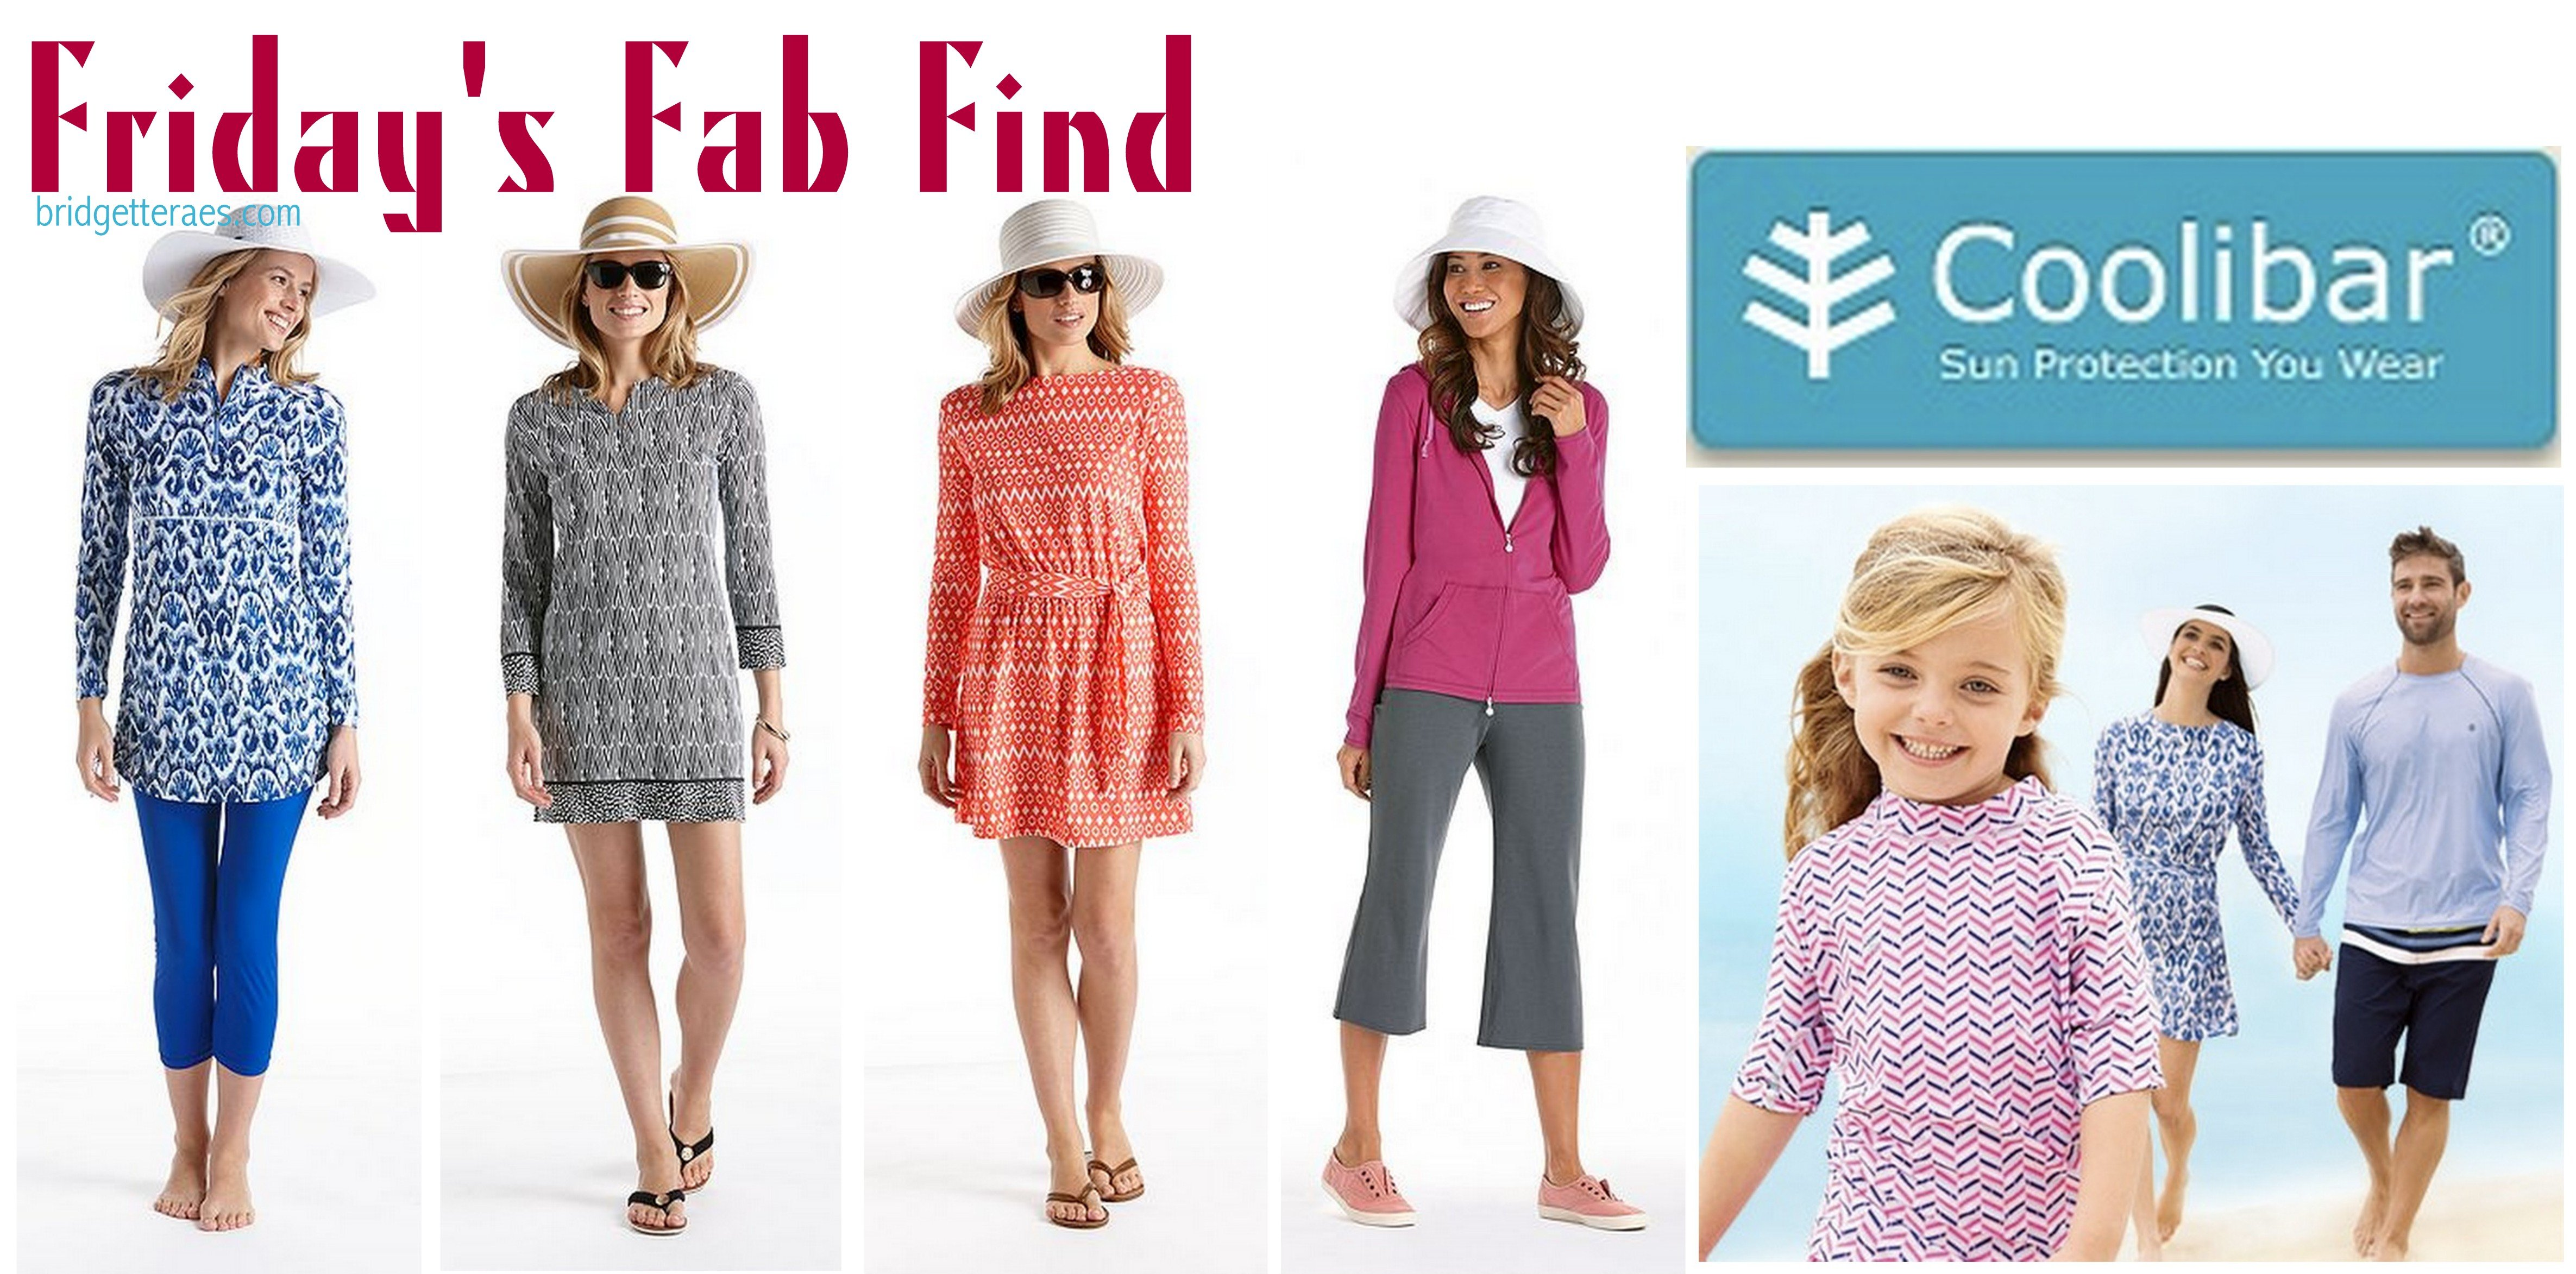 Friday's Fab Find: Coolibar, Sun Protective Clothing